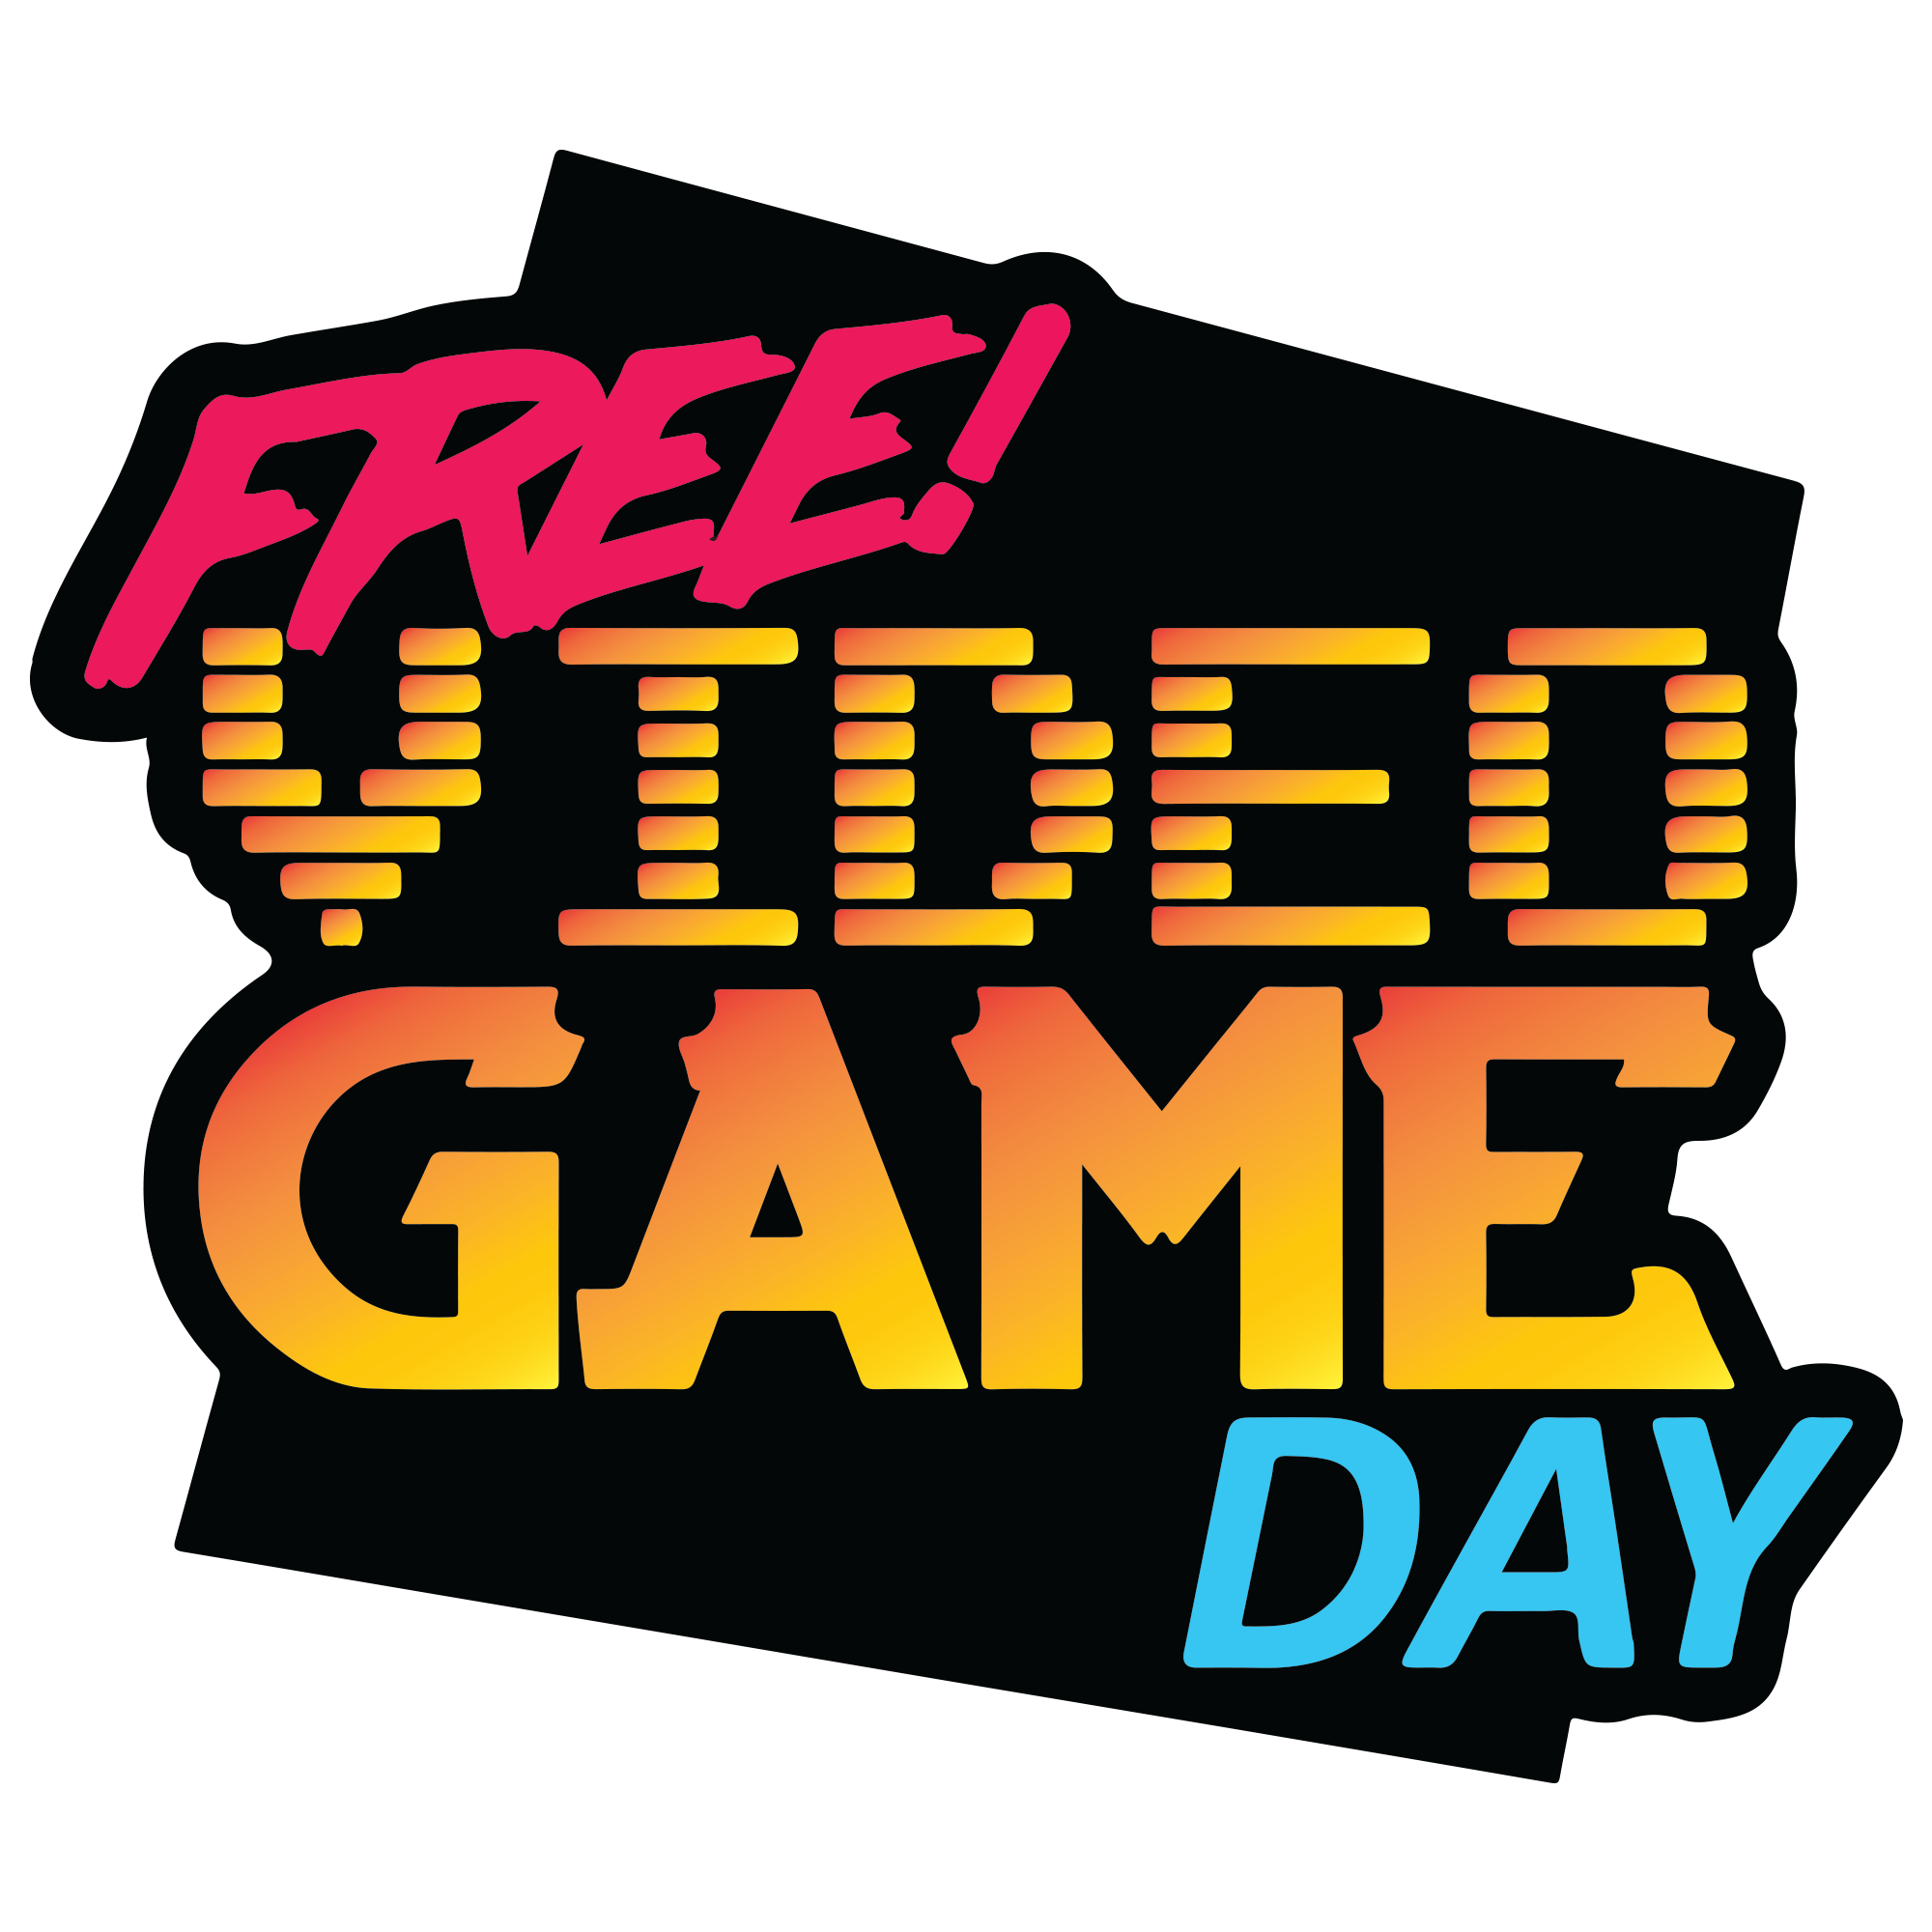 Gaming clipart game day. Free video appreciation at